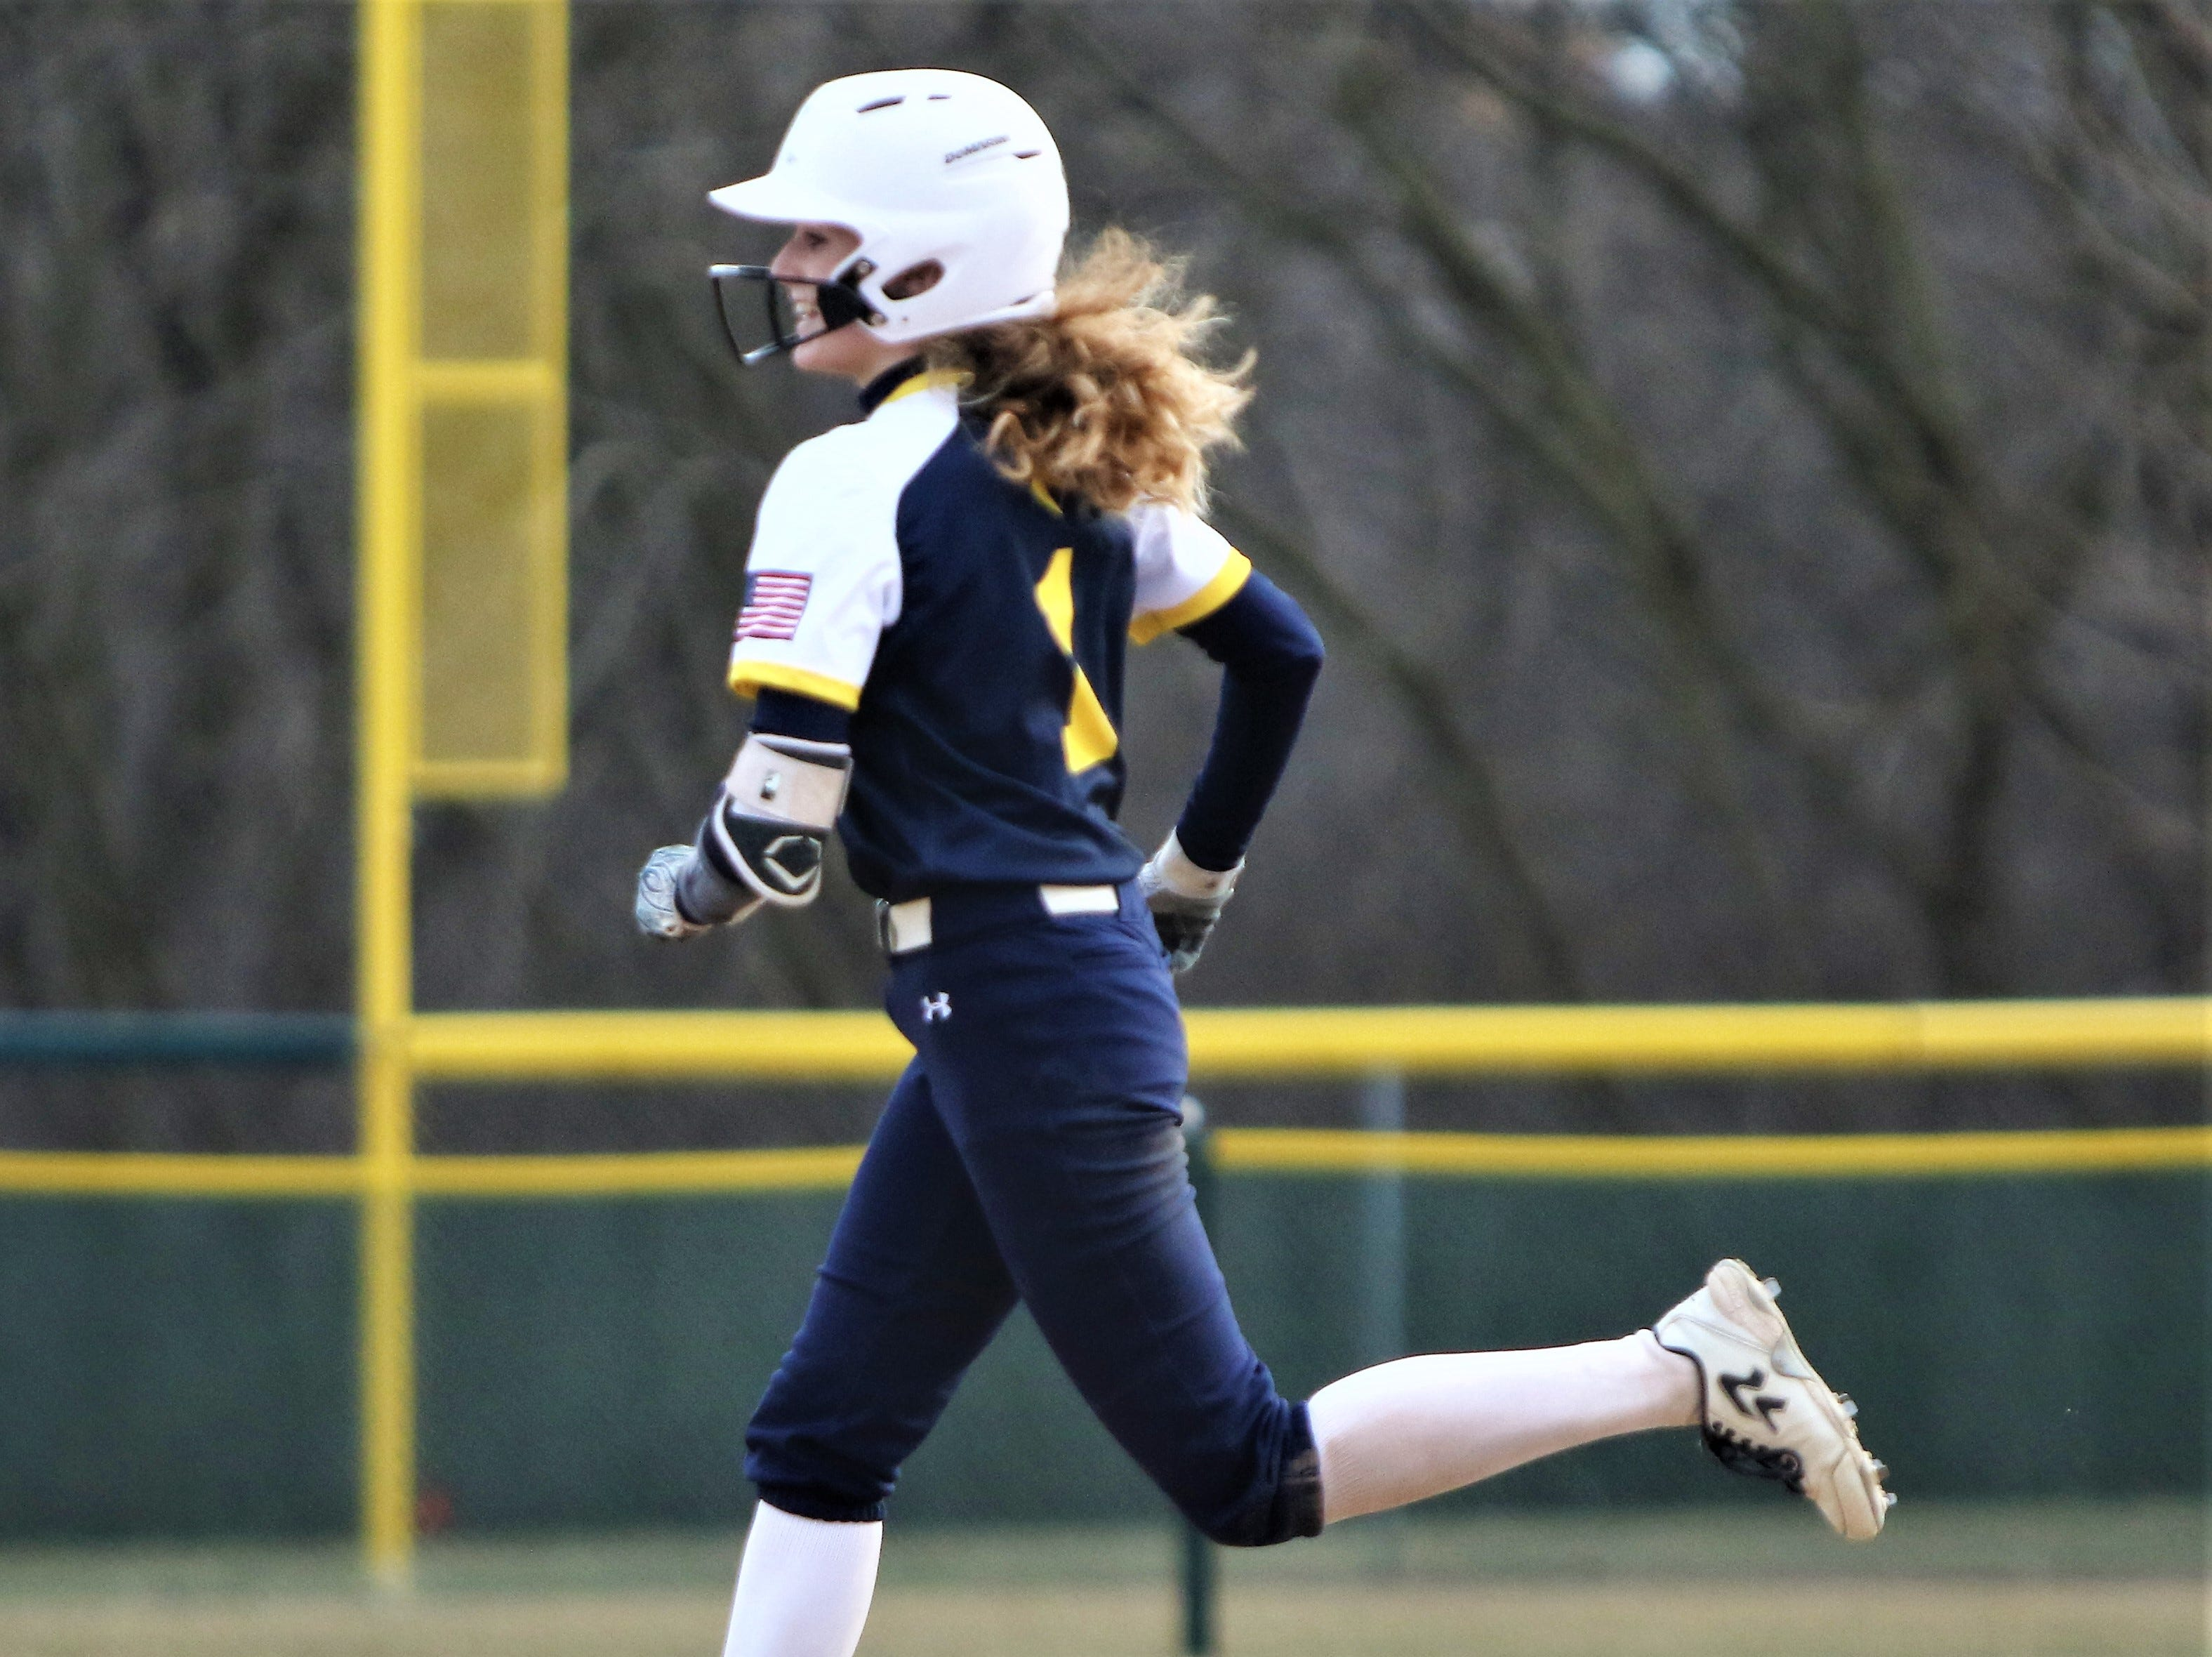 Whitnall junior Abby Cunningham rounds the bases after hitting a home run against Greenfield on April 3, 2019.